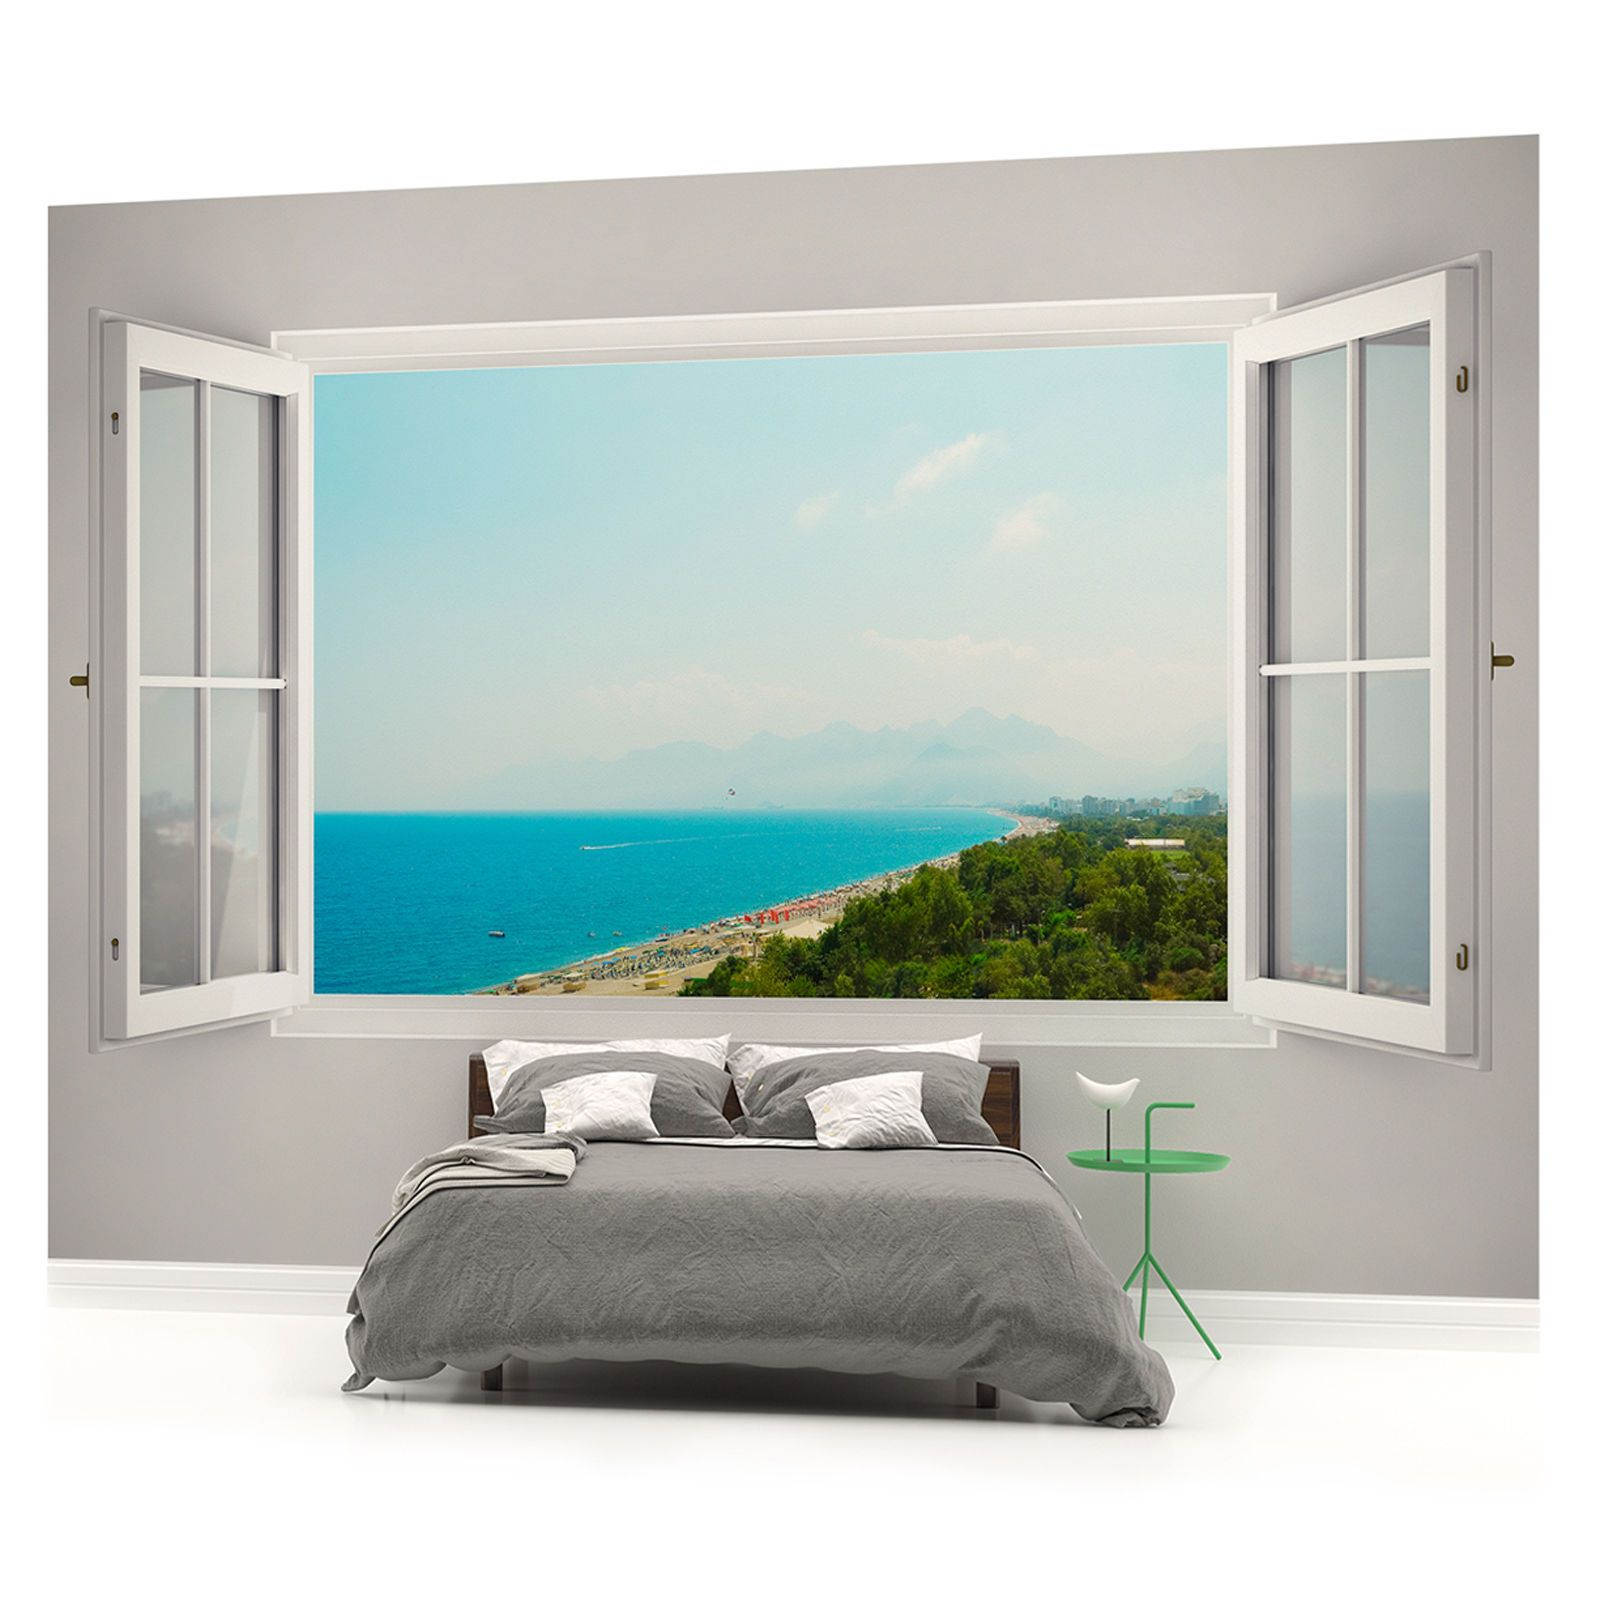 fototapete wandbild fototapeten bild tapete meerblick strand meer w1061 fototapete. Black Bedroom Furniture Sets. Home Design Ideas